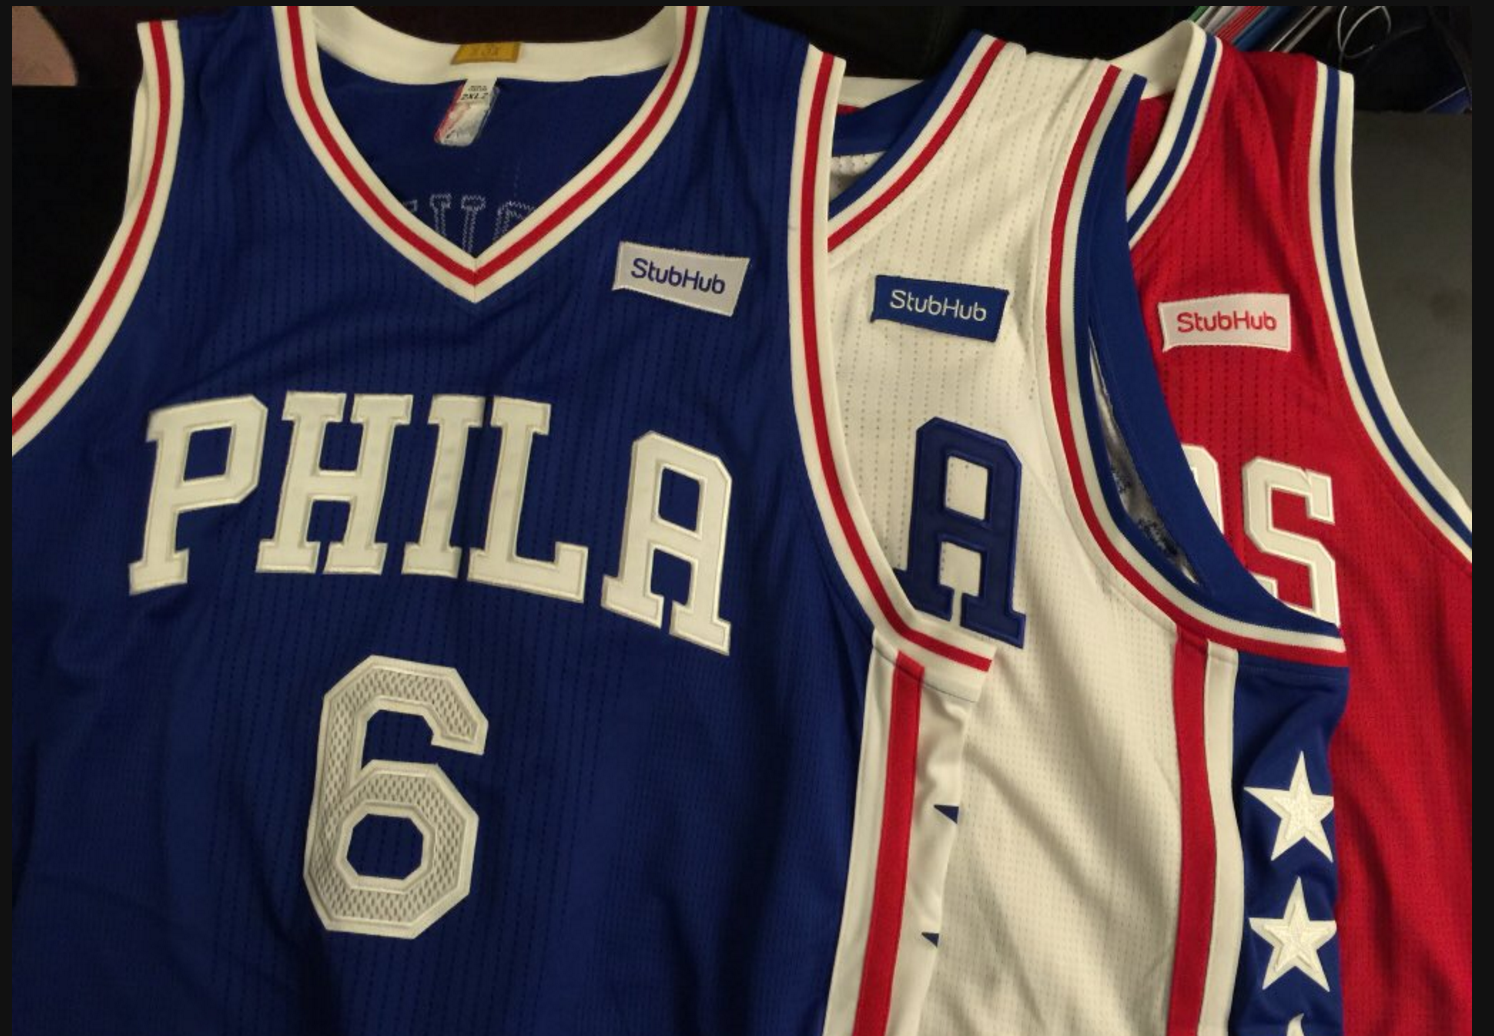 325db5fb20f7 76ers 1st NBA team to land jersey sponsorship with StubHub - Chicago ...